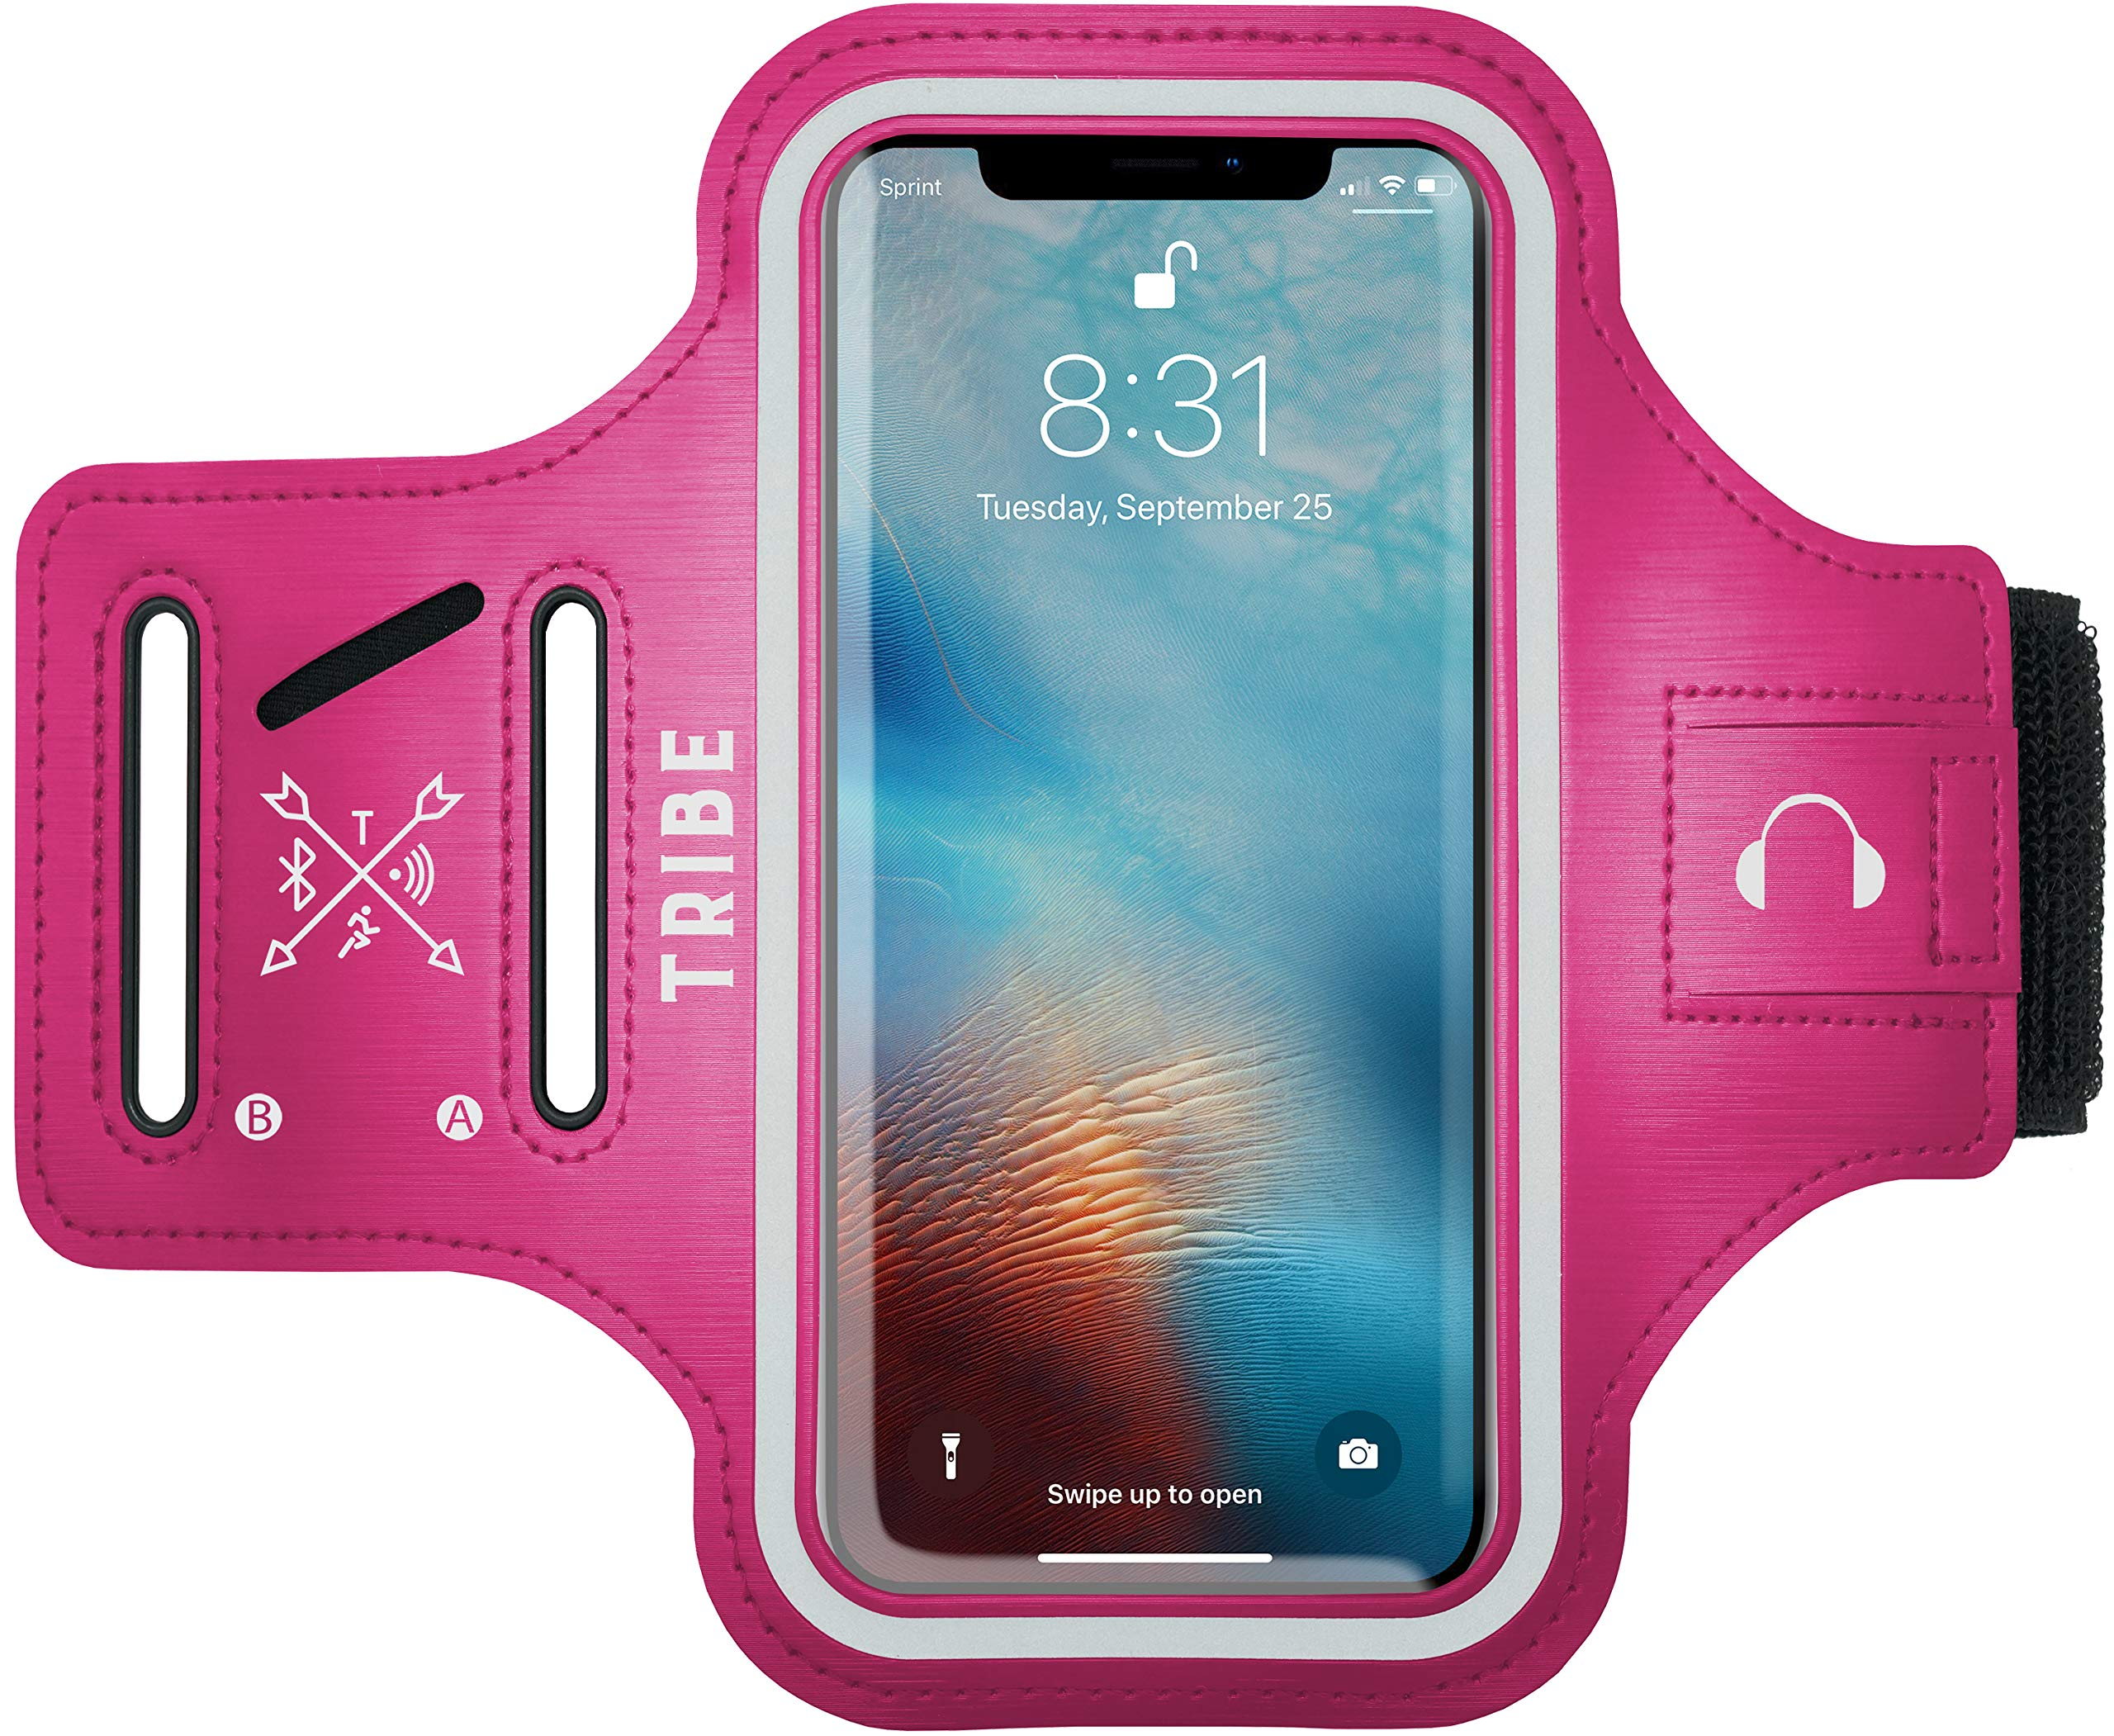 TRIBE Water Resistant Cell Phone Armband Case for iPhone X, Xs, 8, 7, 6, 6S Samsung Galaxy S9, S8, S7, S6, A8 with Adjustable Elastic Band & Key Holder for Running, Walking, Hiking - 91QY50DIQAL - TRIBE Water Resistant Cell Phone Armband Case for iPhone X, Xs, 8, 7, 6, 6S Galaxy S9, S8, S7, S6, A8 with Adjustable Elastic Band